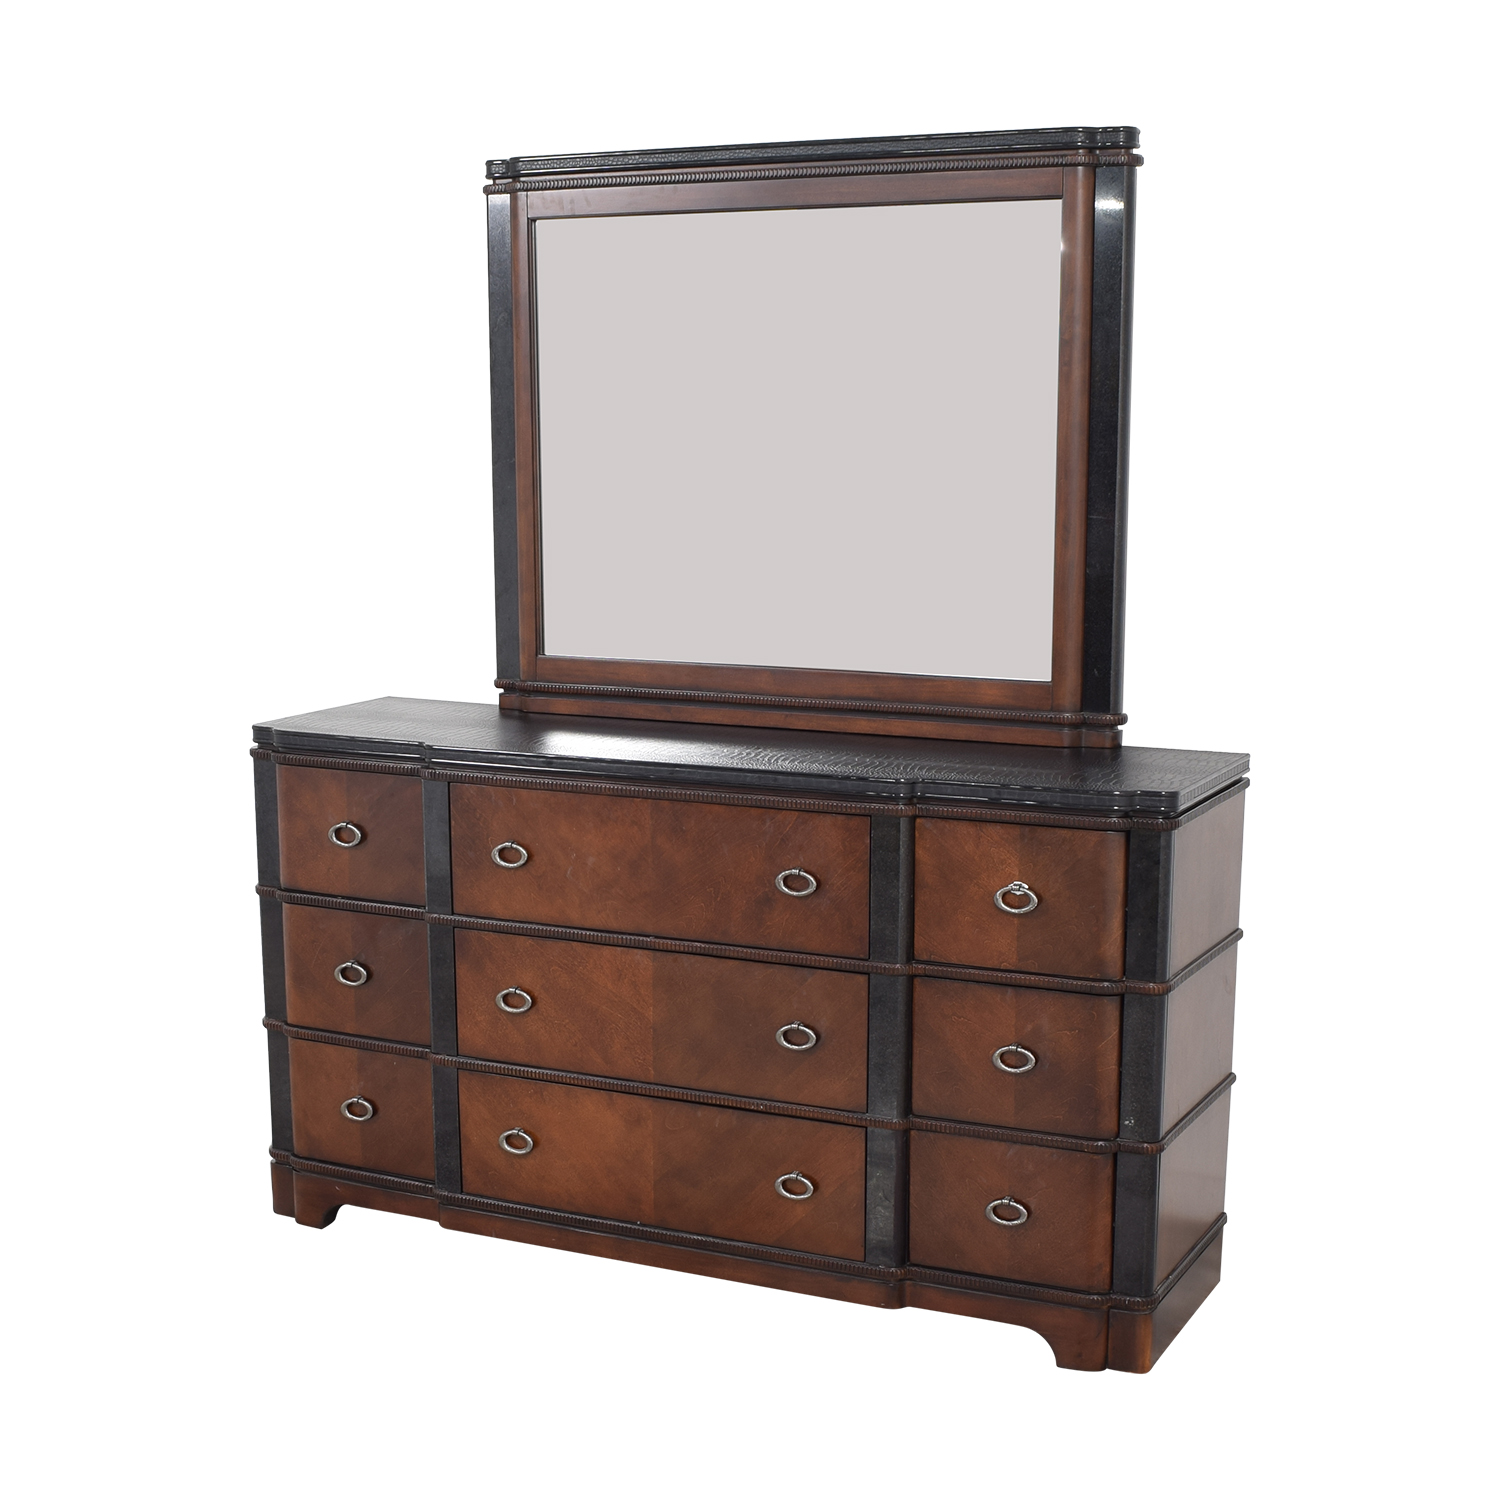 Raymour & Flanigan Raymour & Flanigan Dundee Bedroom Dresser with Mirror Storage